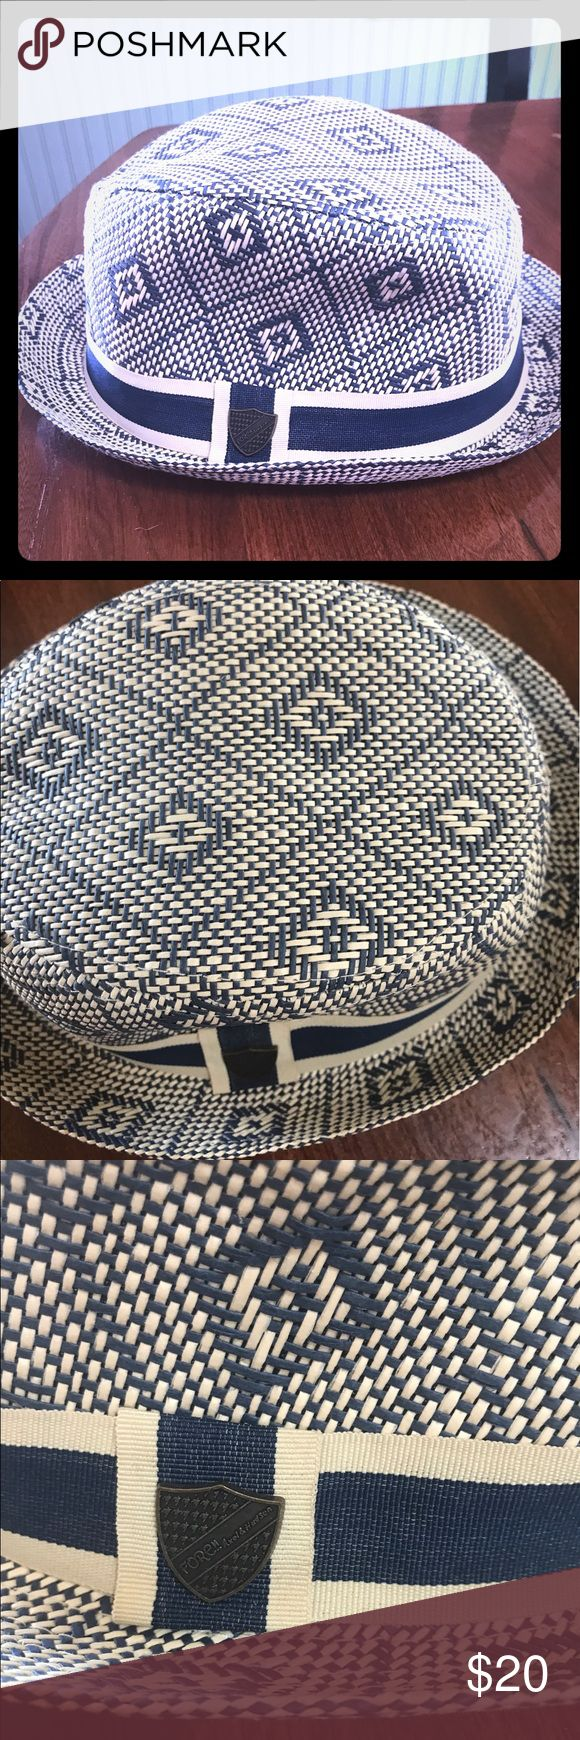 Fore! Axel & Hudson Navy Straw Fedora SZ M/ L 4-6 Fore! Axel & Fore Navy Straw Fedora Size M/L - New without tags . Excellent Quality ! So Much Detail . This is a very high end clothing line . This hat makes a statement !! Too Cute ! Fore! Axel & Hudson Accessories Hats